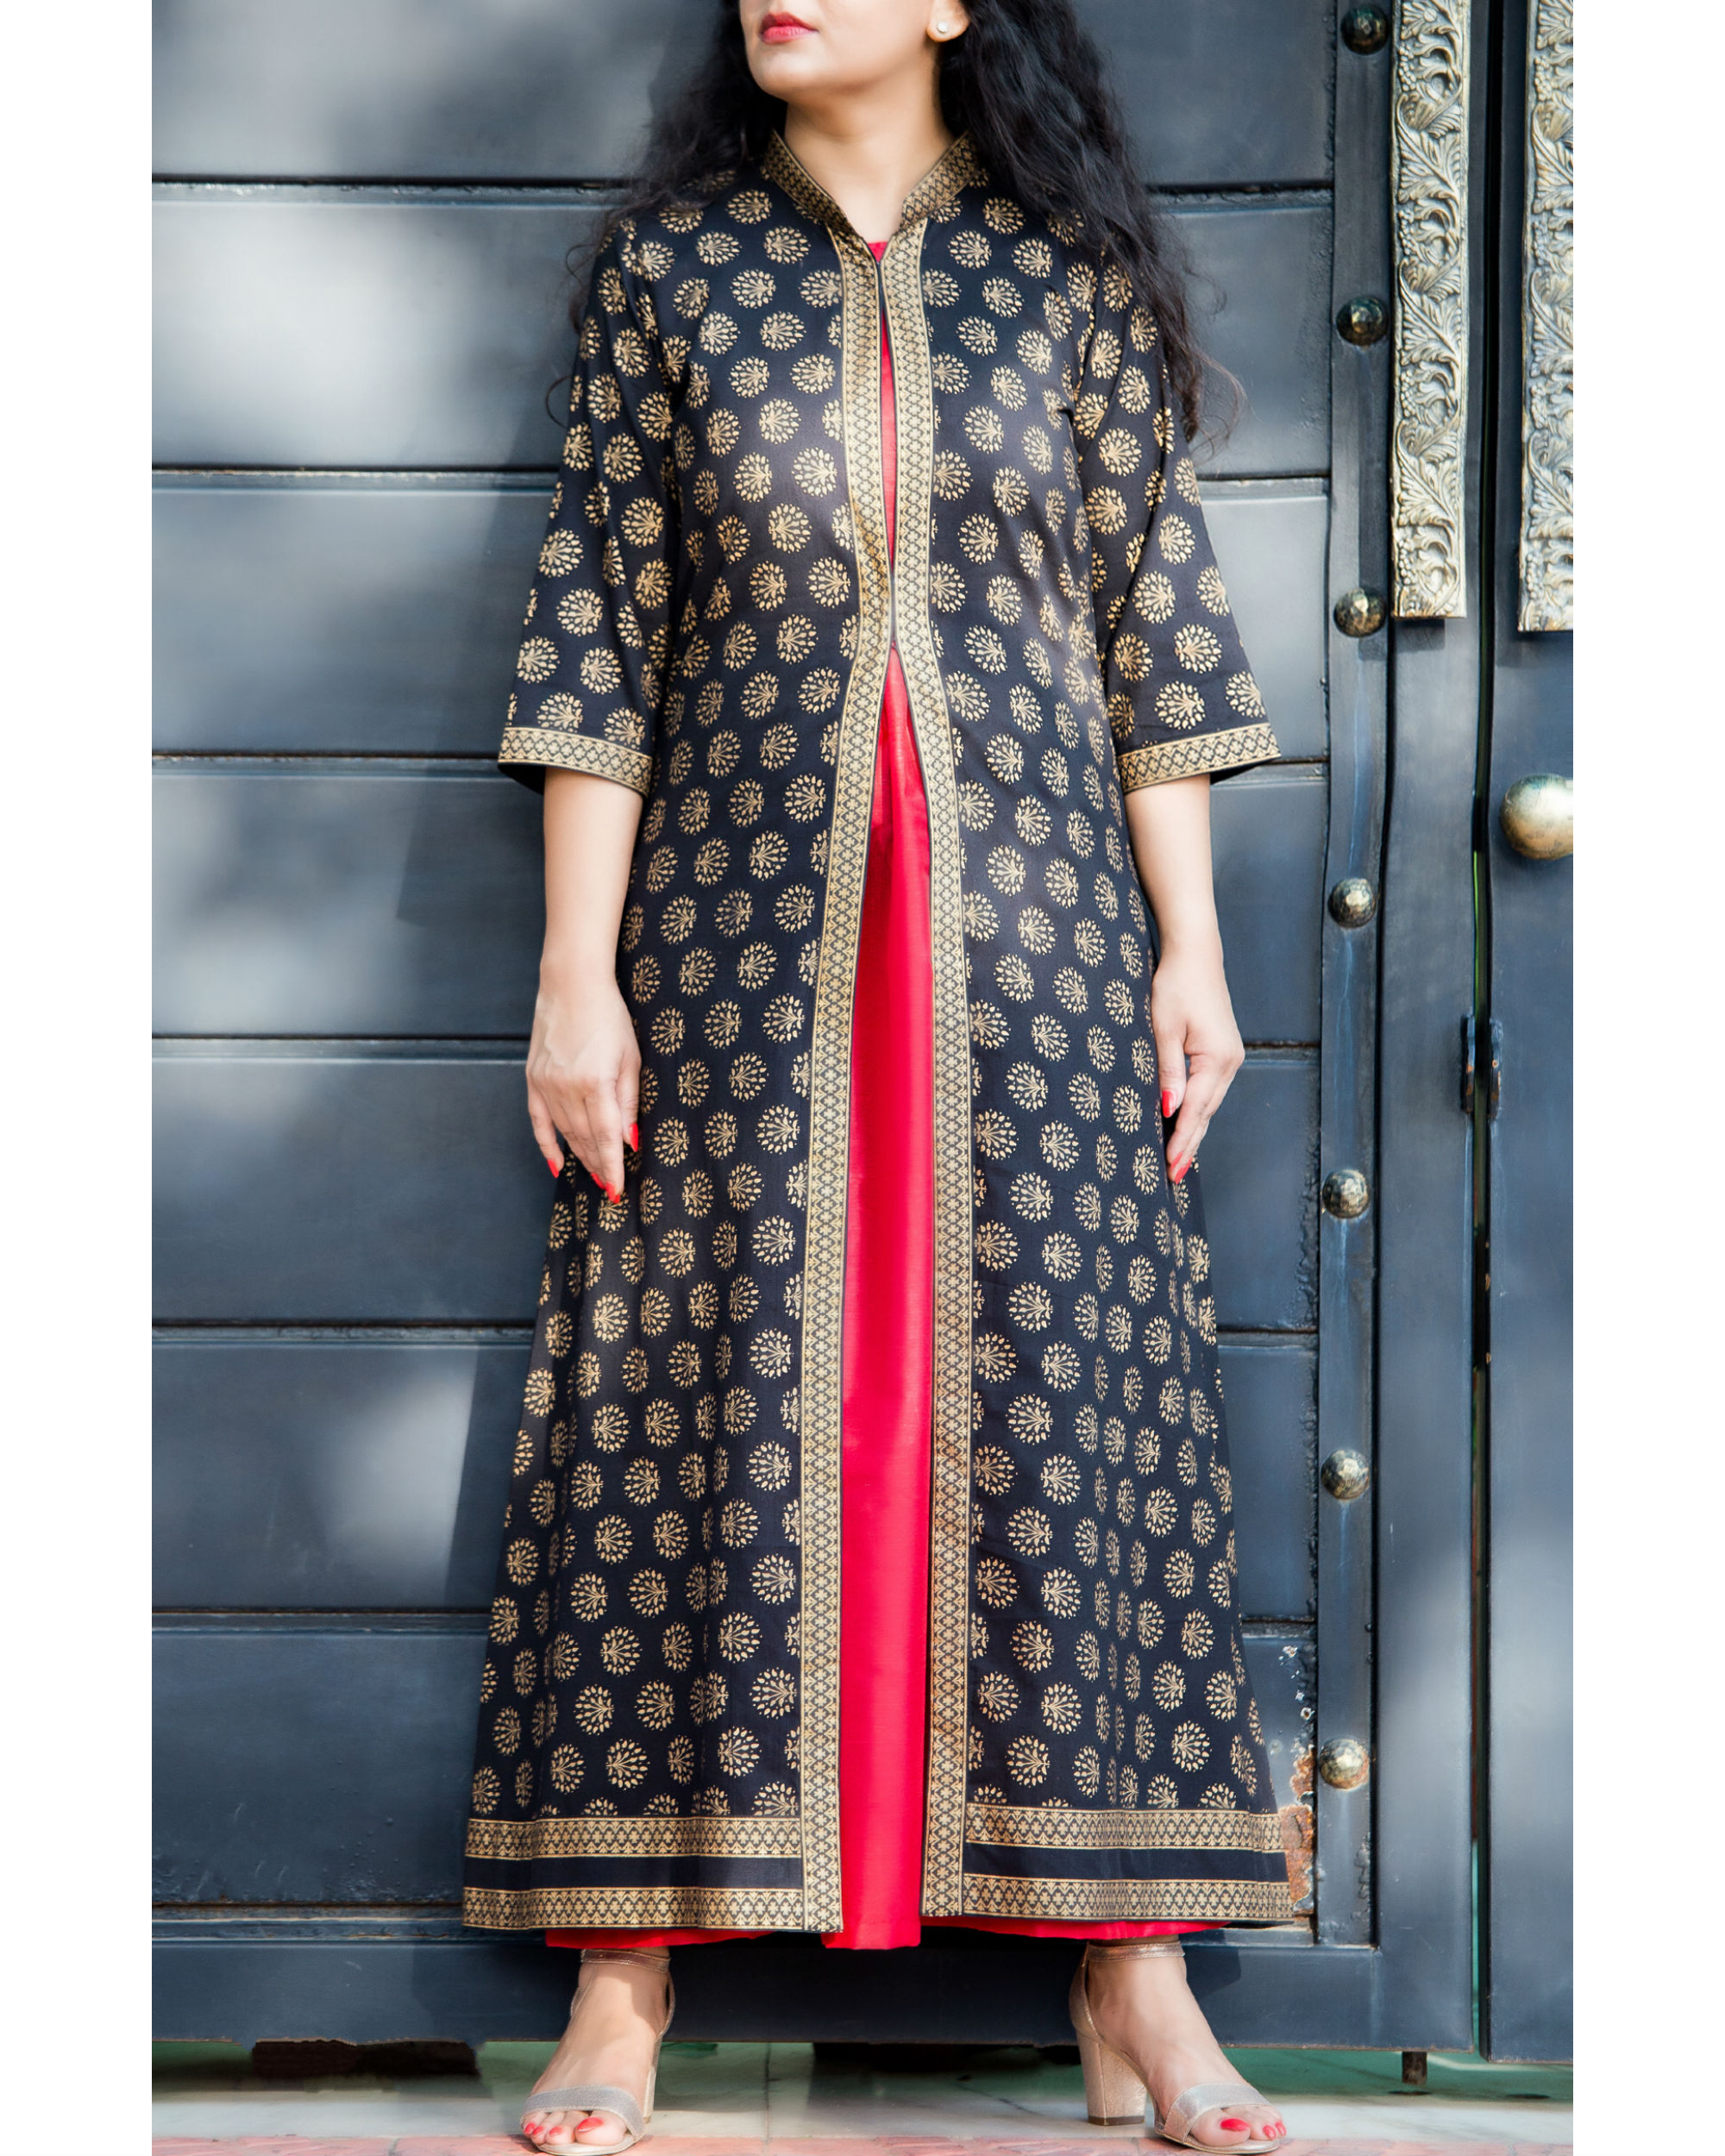 Black and gold embossed double layered dress